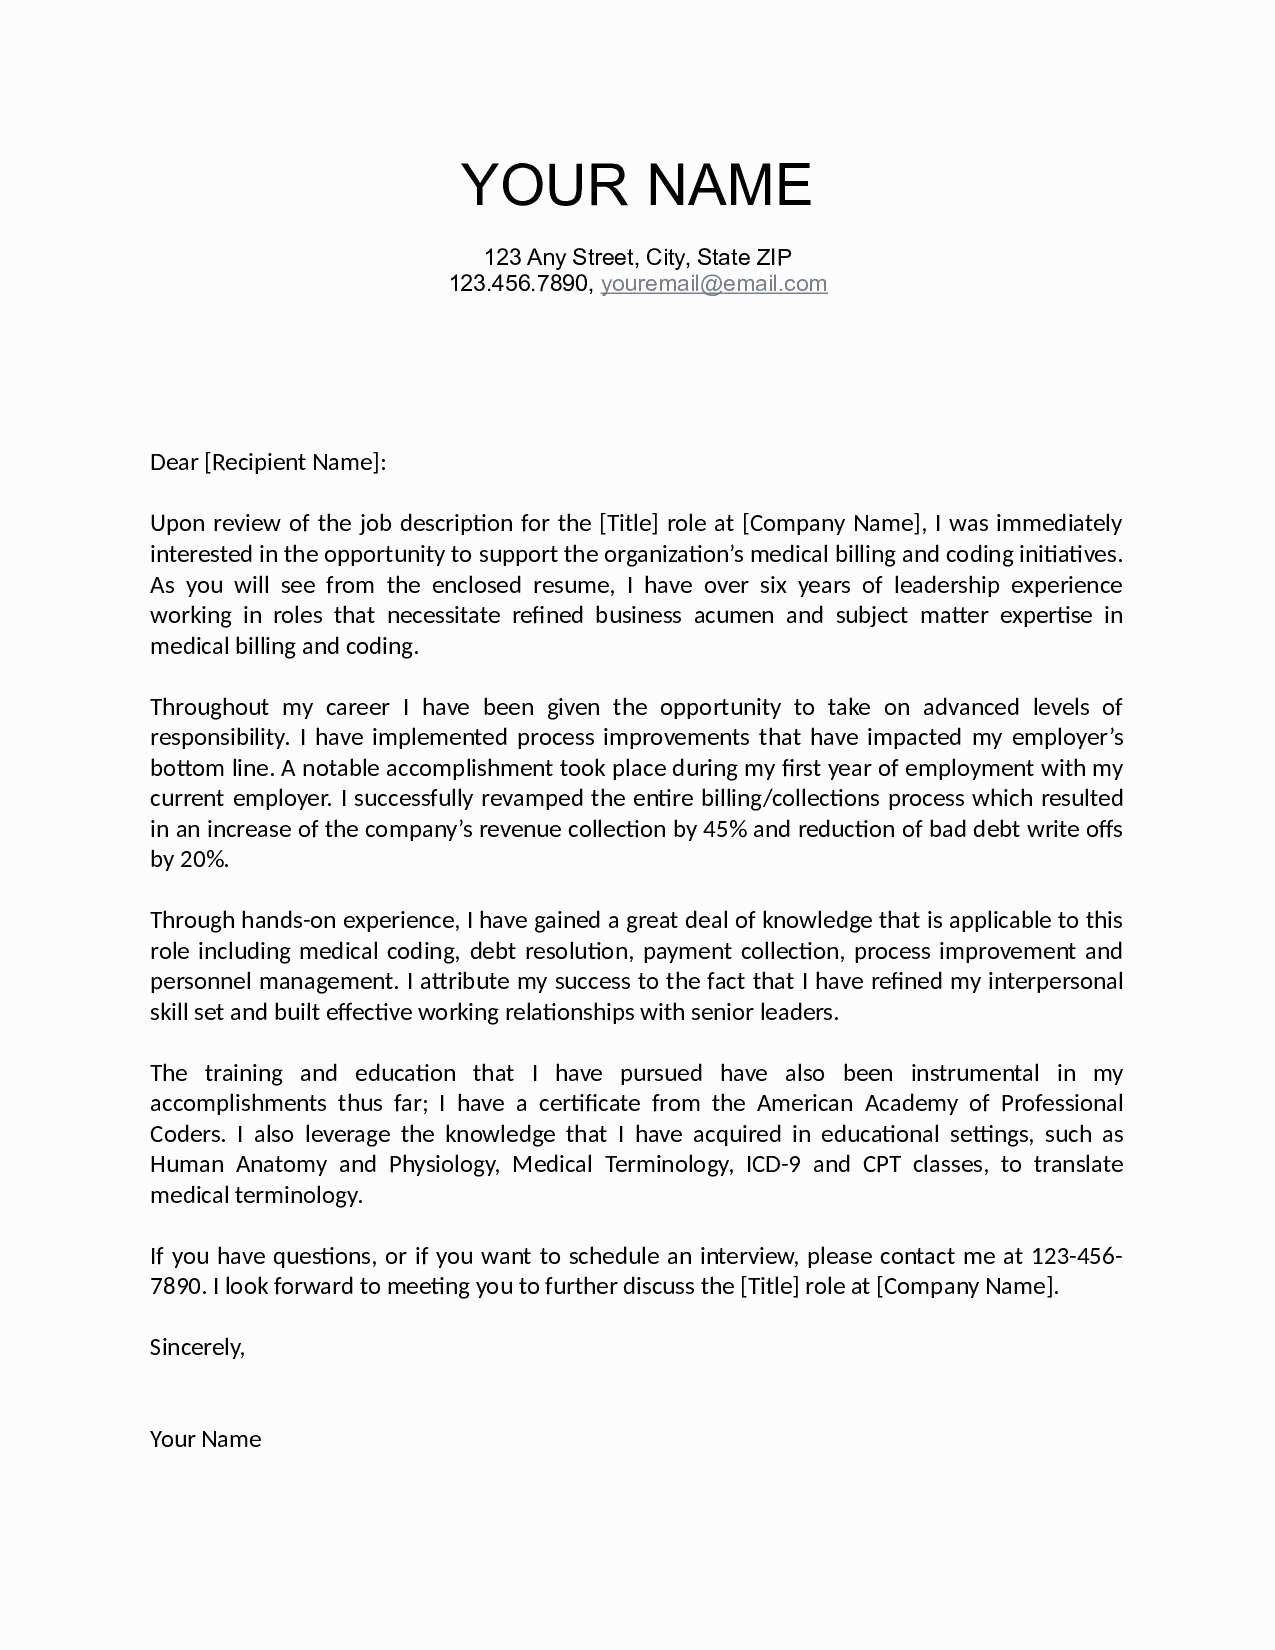 simple job offer letter template simple format job fer letter refrence job fer letter template